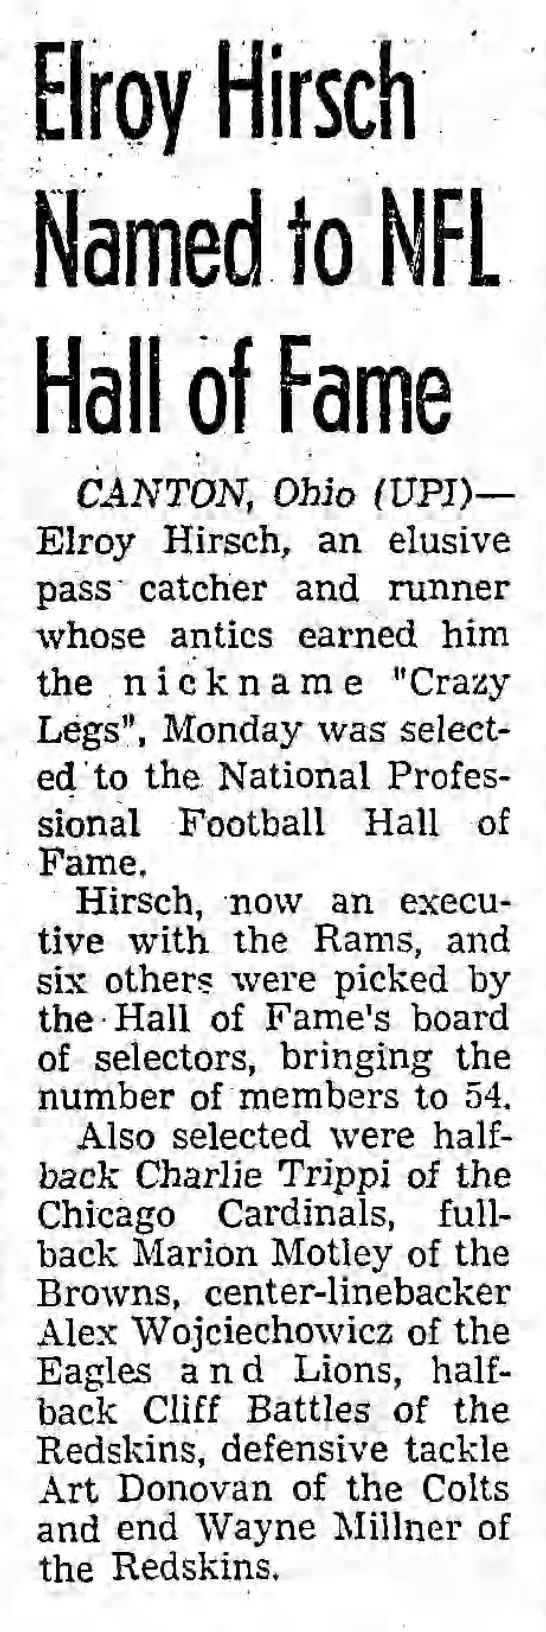 Elroy Hirsch Named to NFL Hall of Fame -